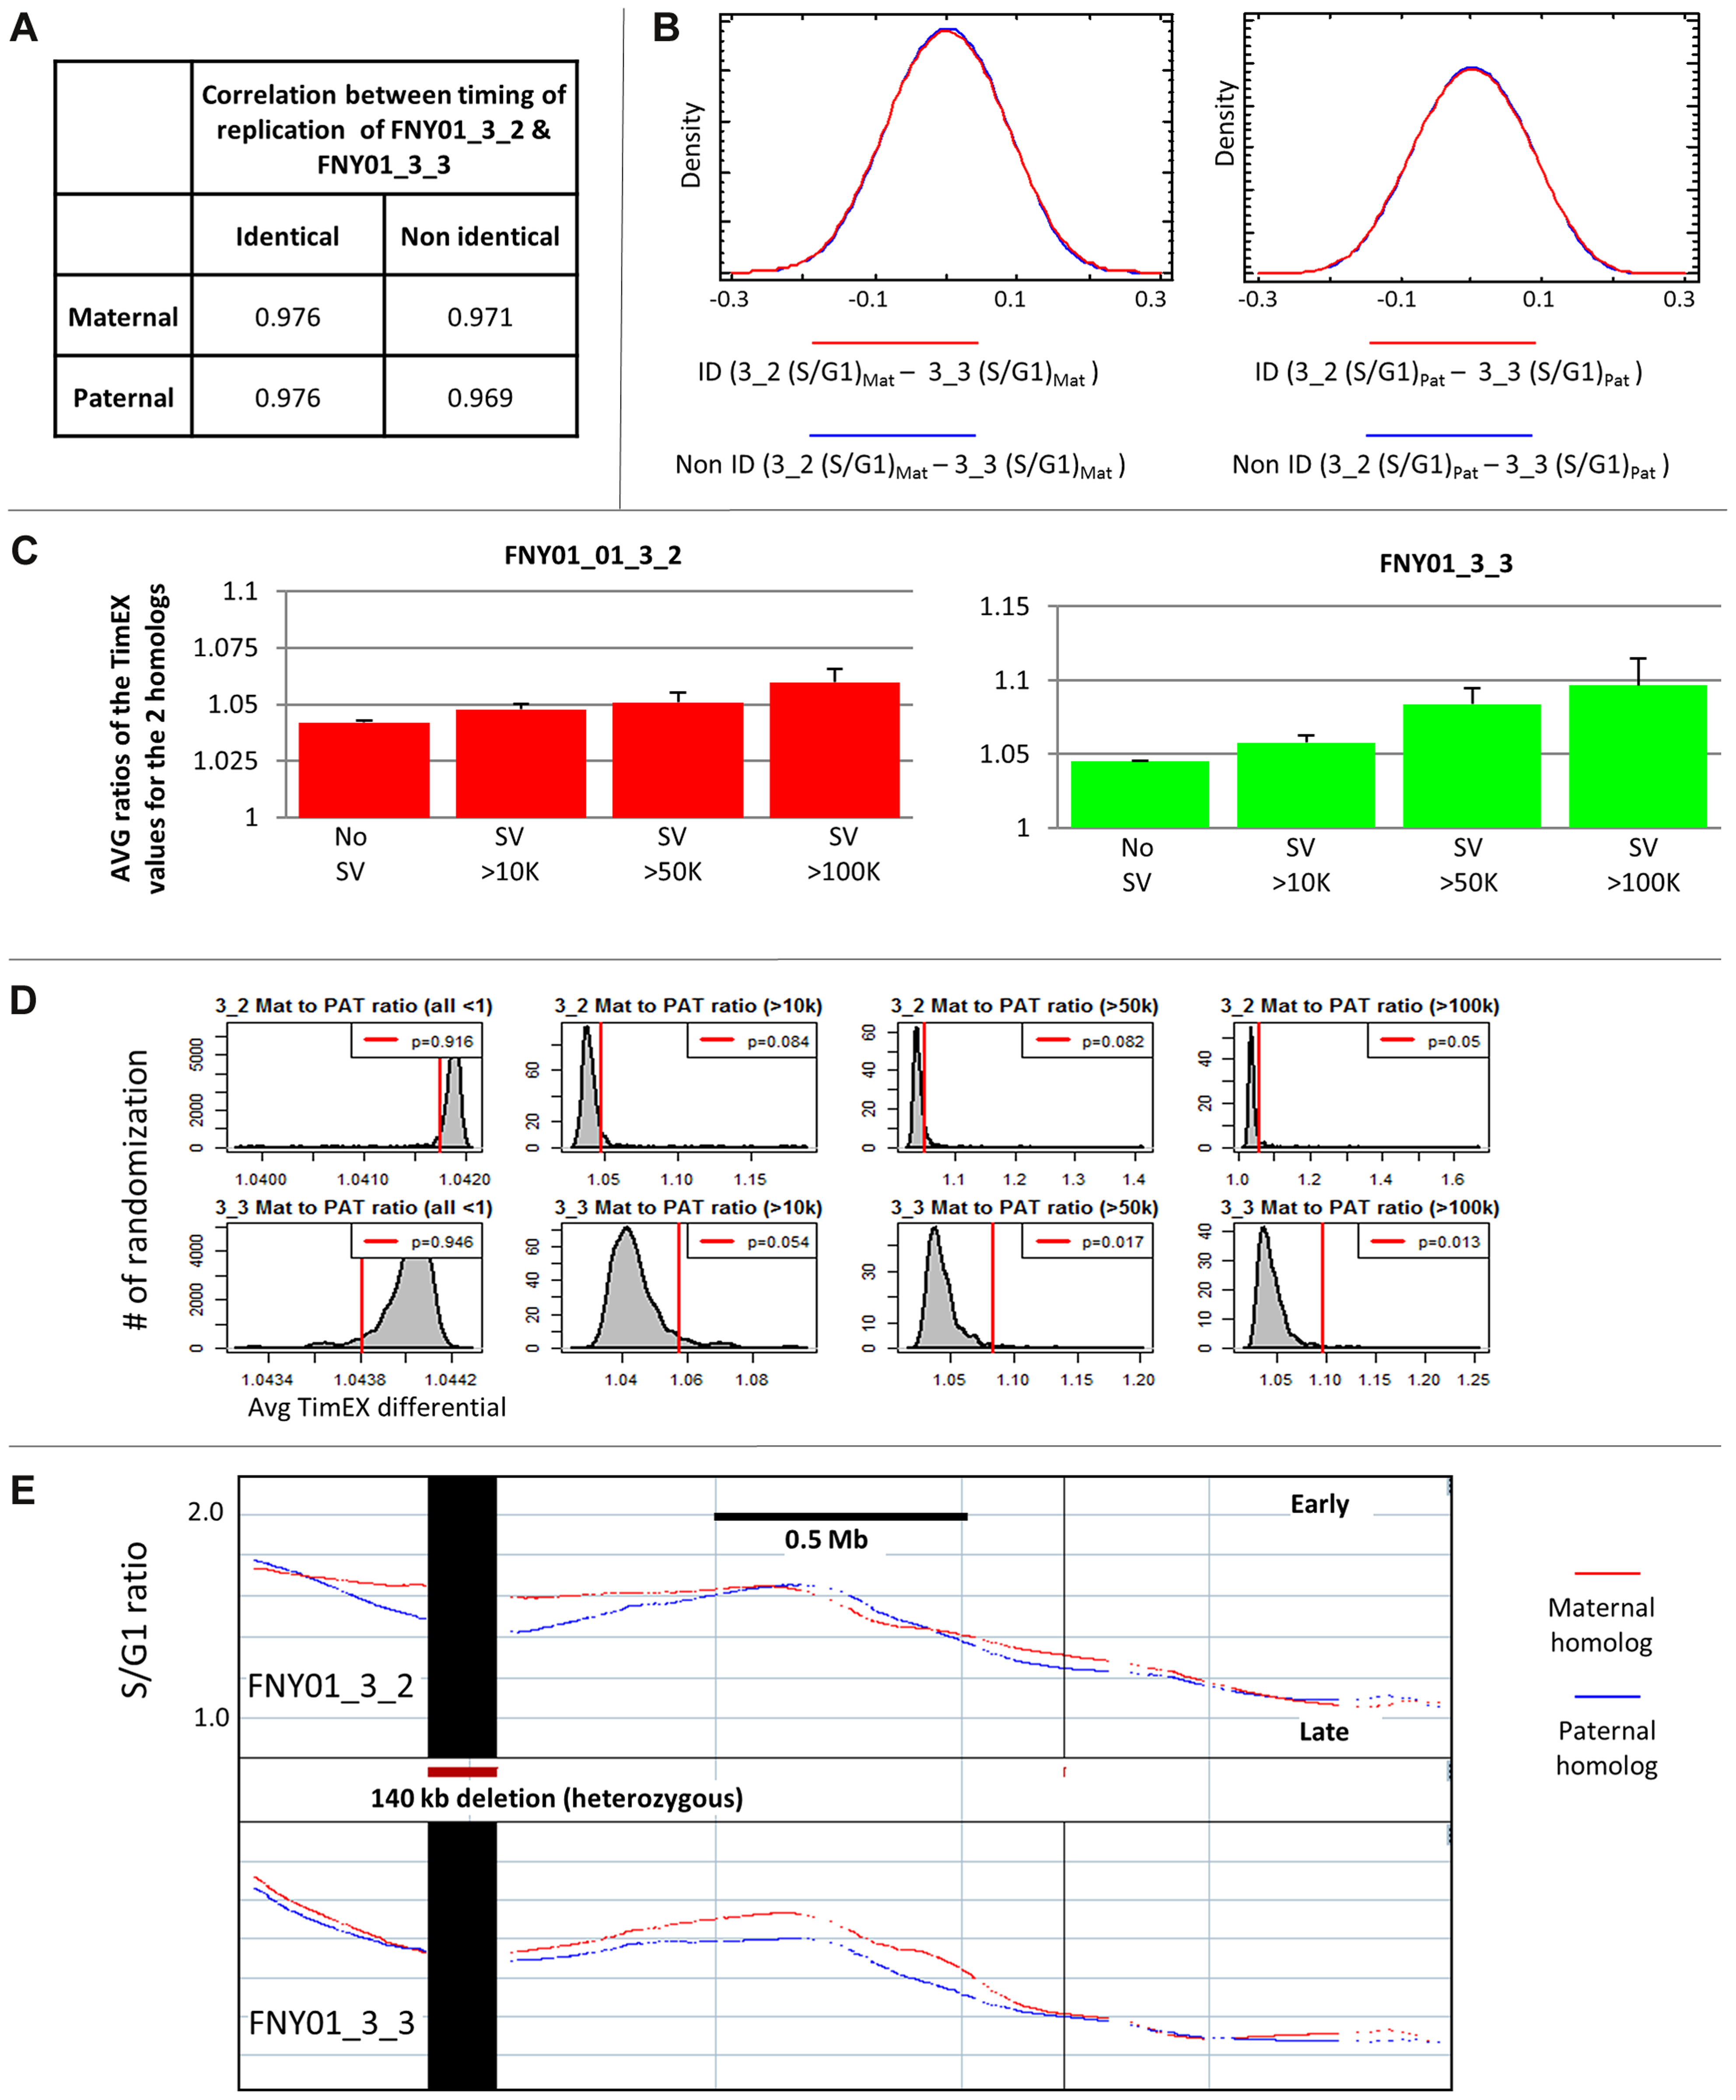 Presence of large structural variants can alter replication timing regionally.